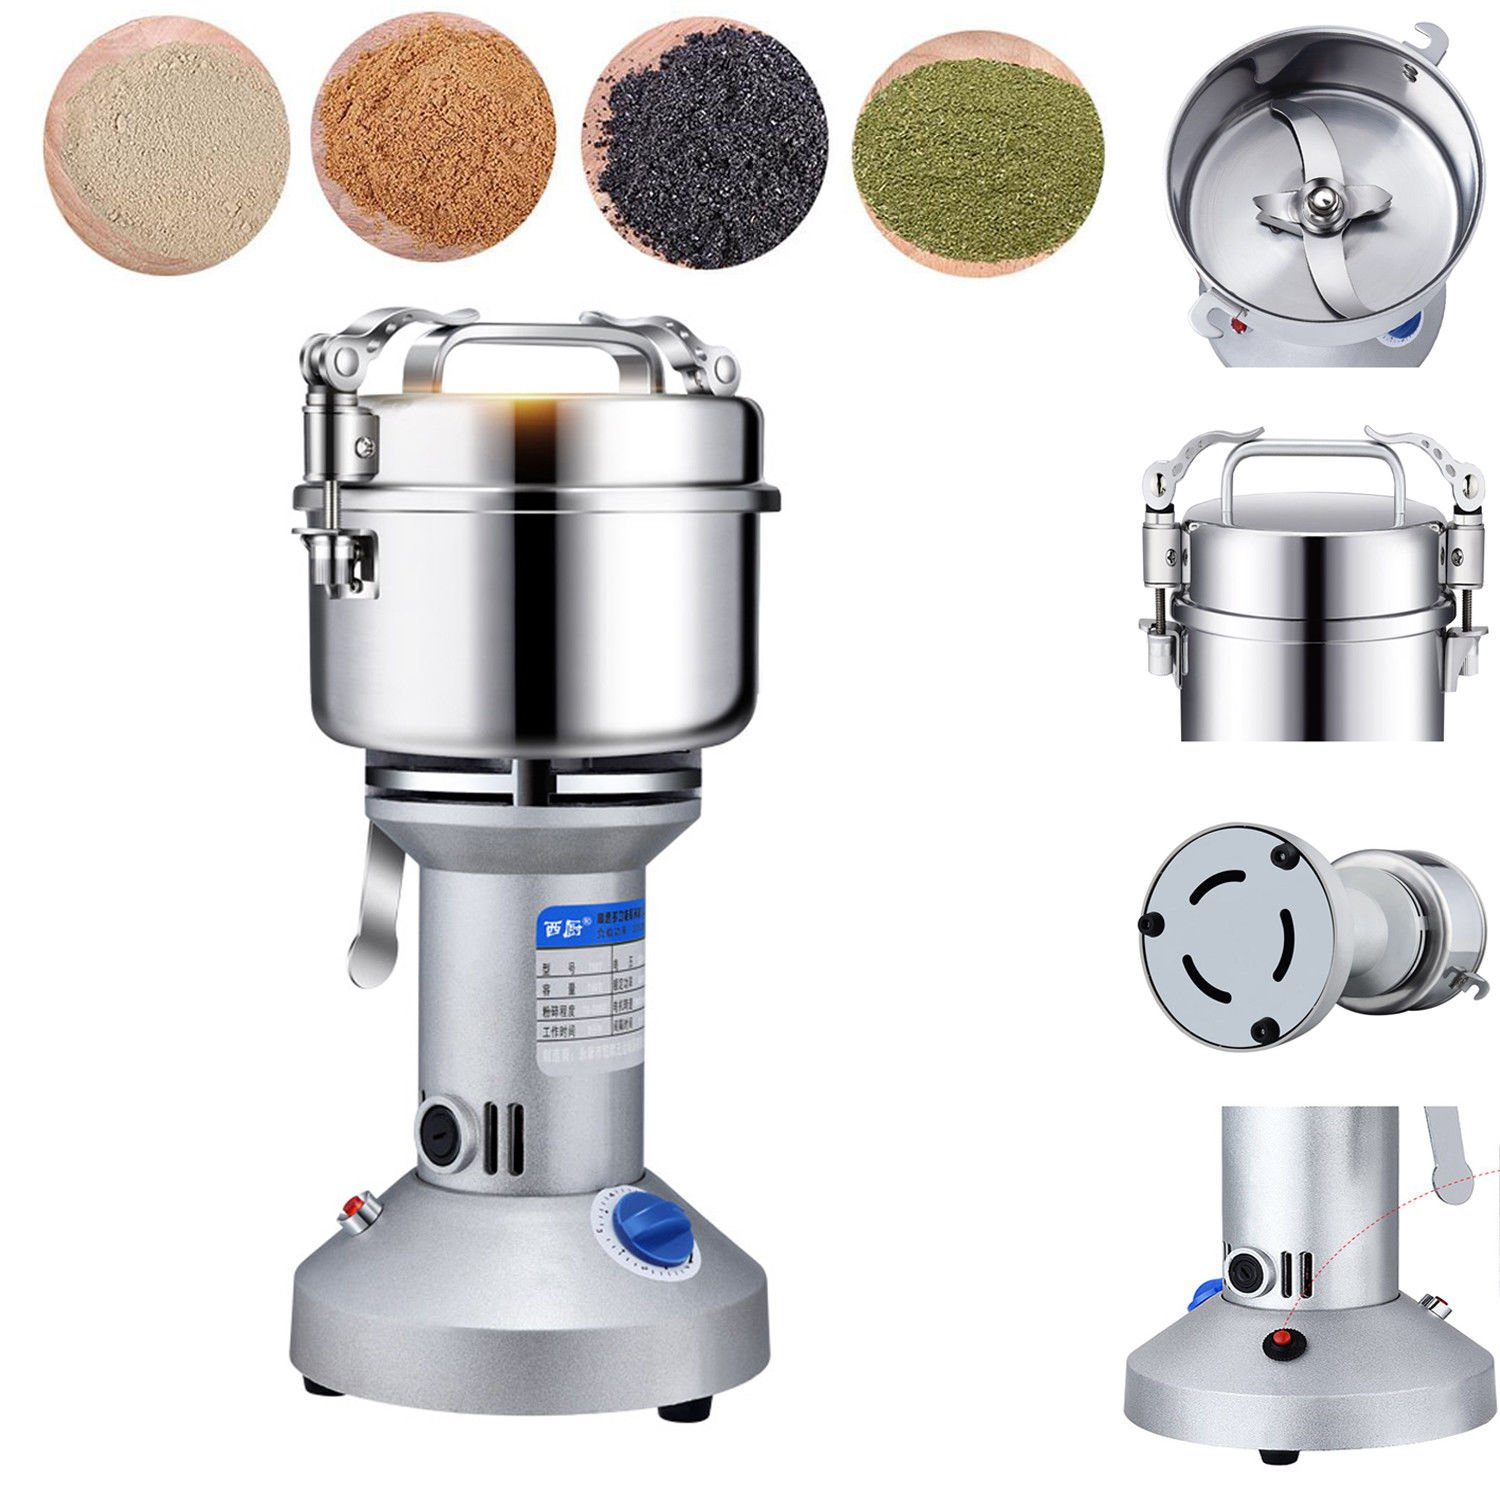 220V 550W 750g High Performance Grain Grinder Mill Powder Stainless Electric Machine Swing Commercial Type YUEWO